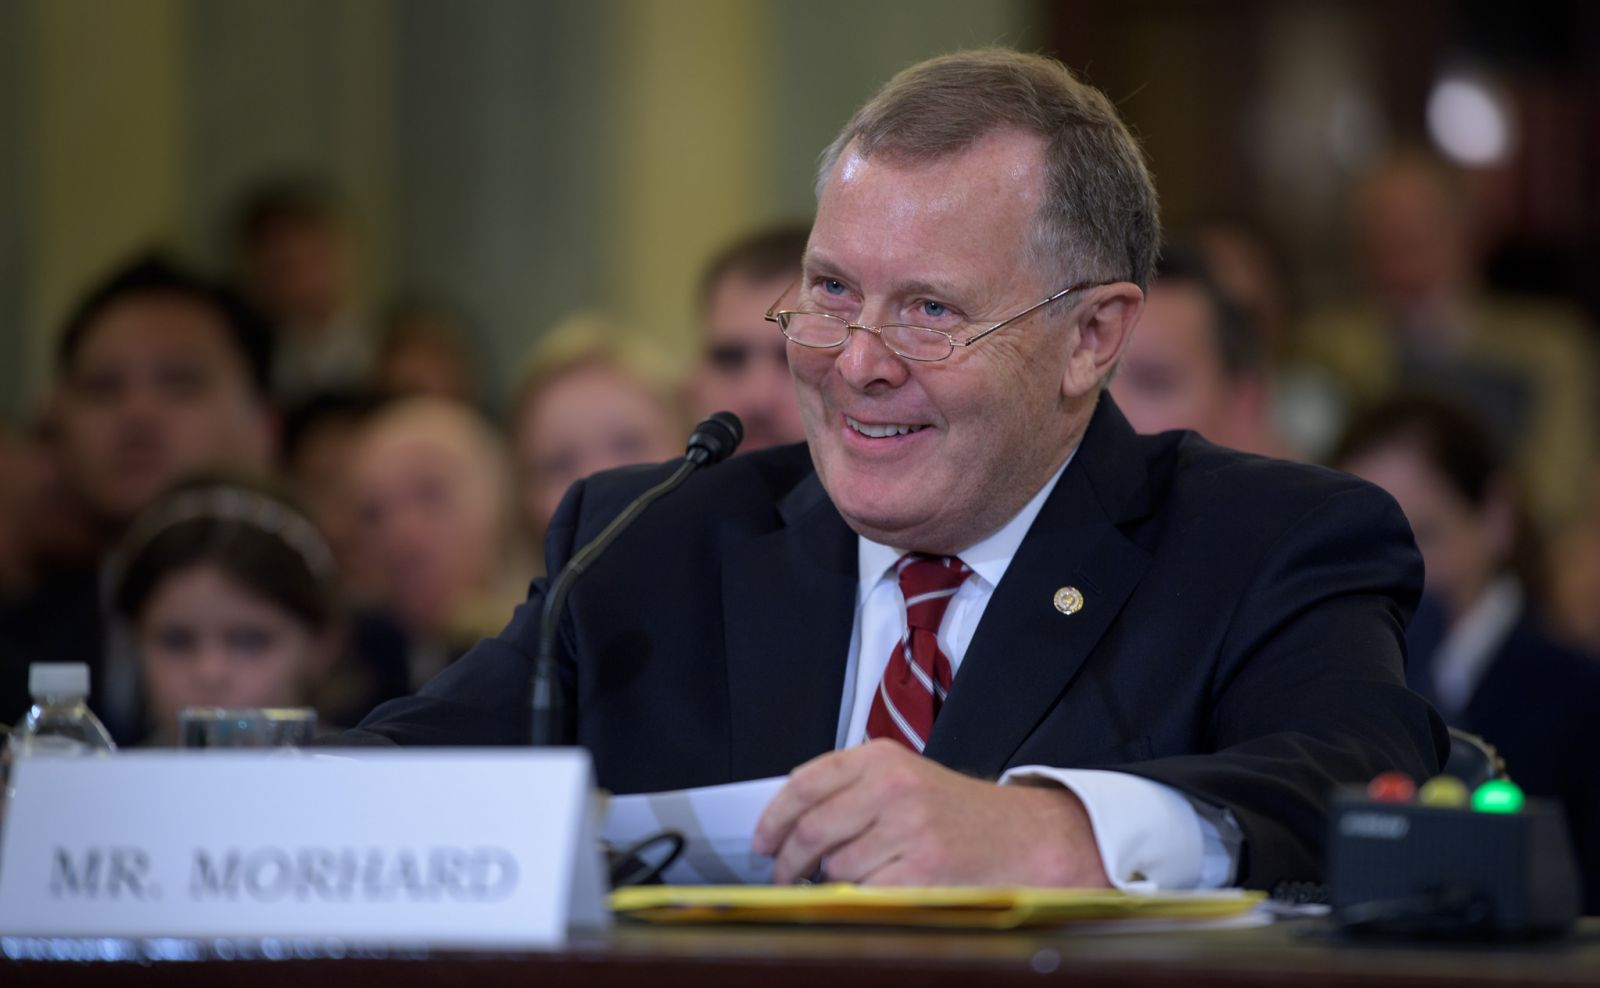 James Morhard, the current deputy Senate sergeant at arms, speaks before the Senate Committee on Commerce, Science, and Transportation during his confirmation hearing to be NASA's deputy administrator. Photo Credit: Bill Ingalls / NASA